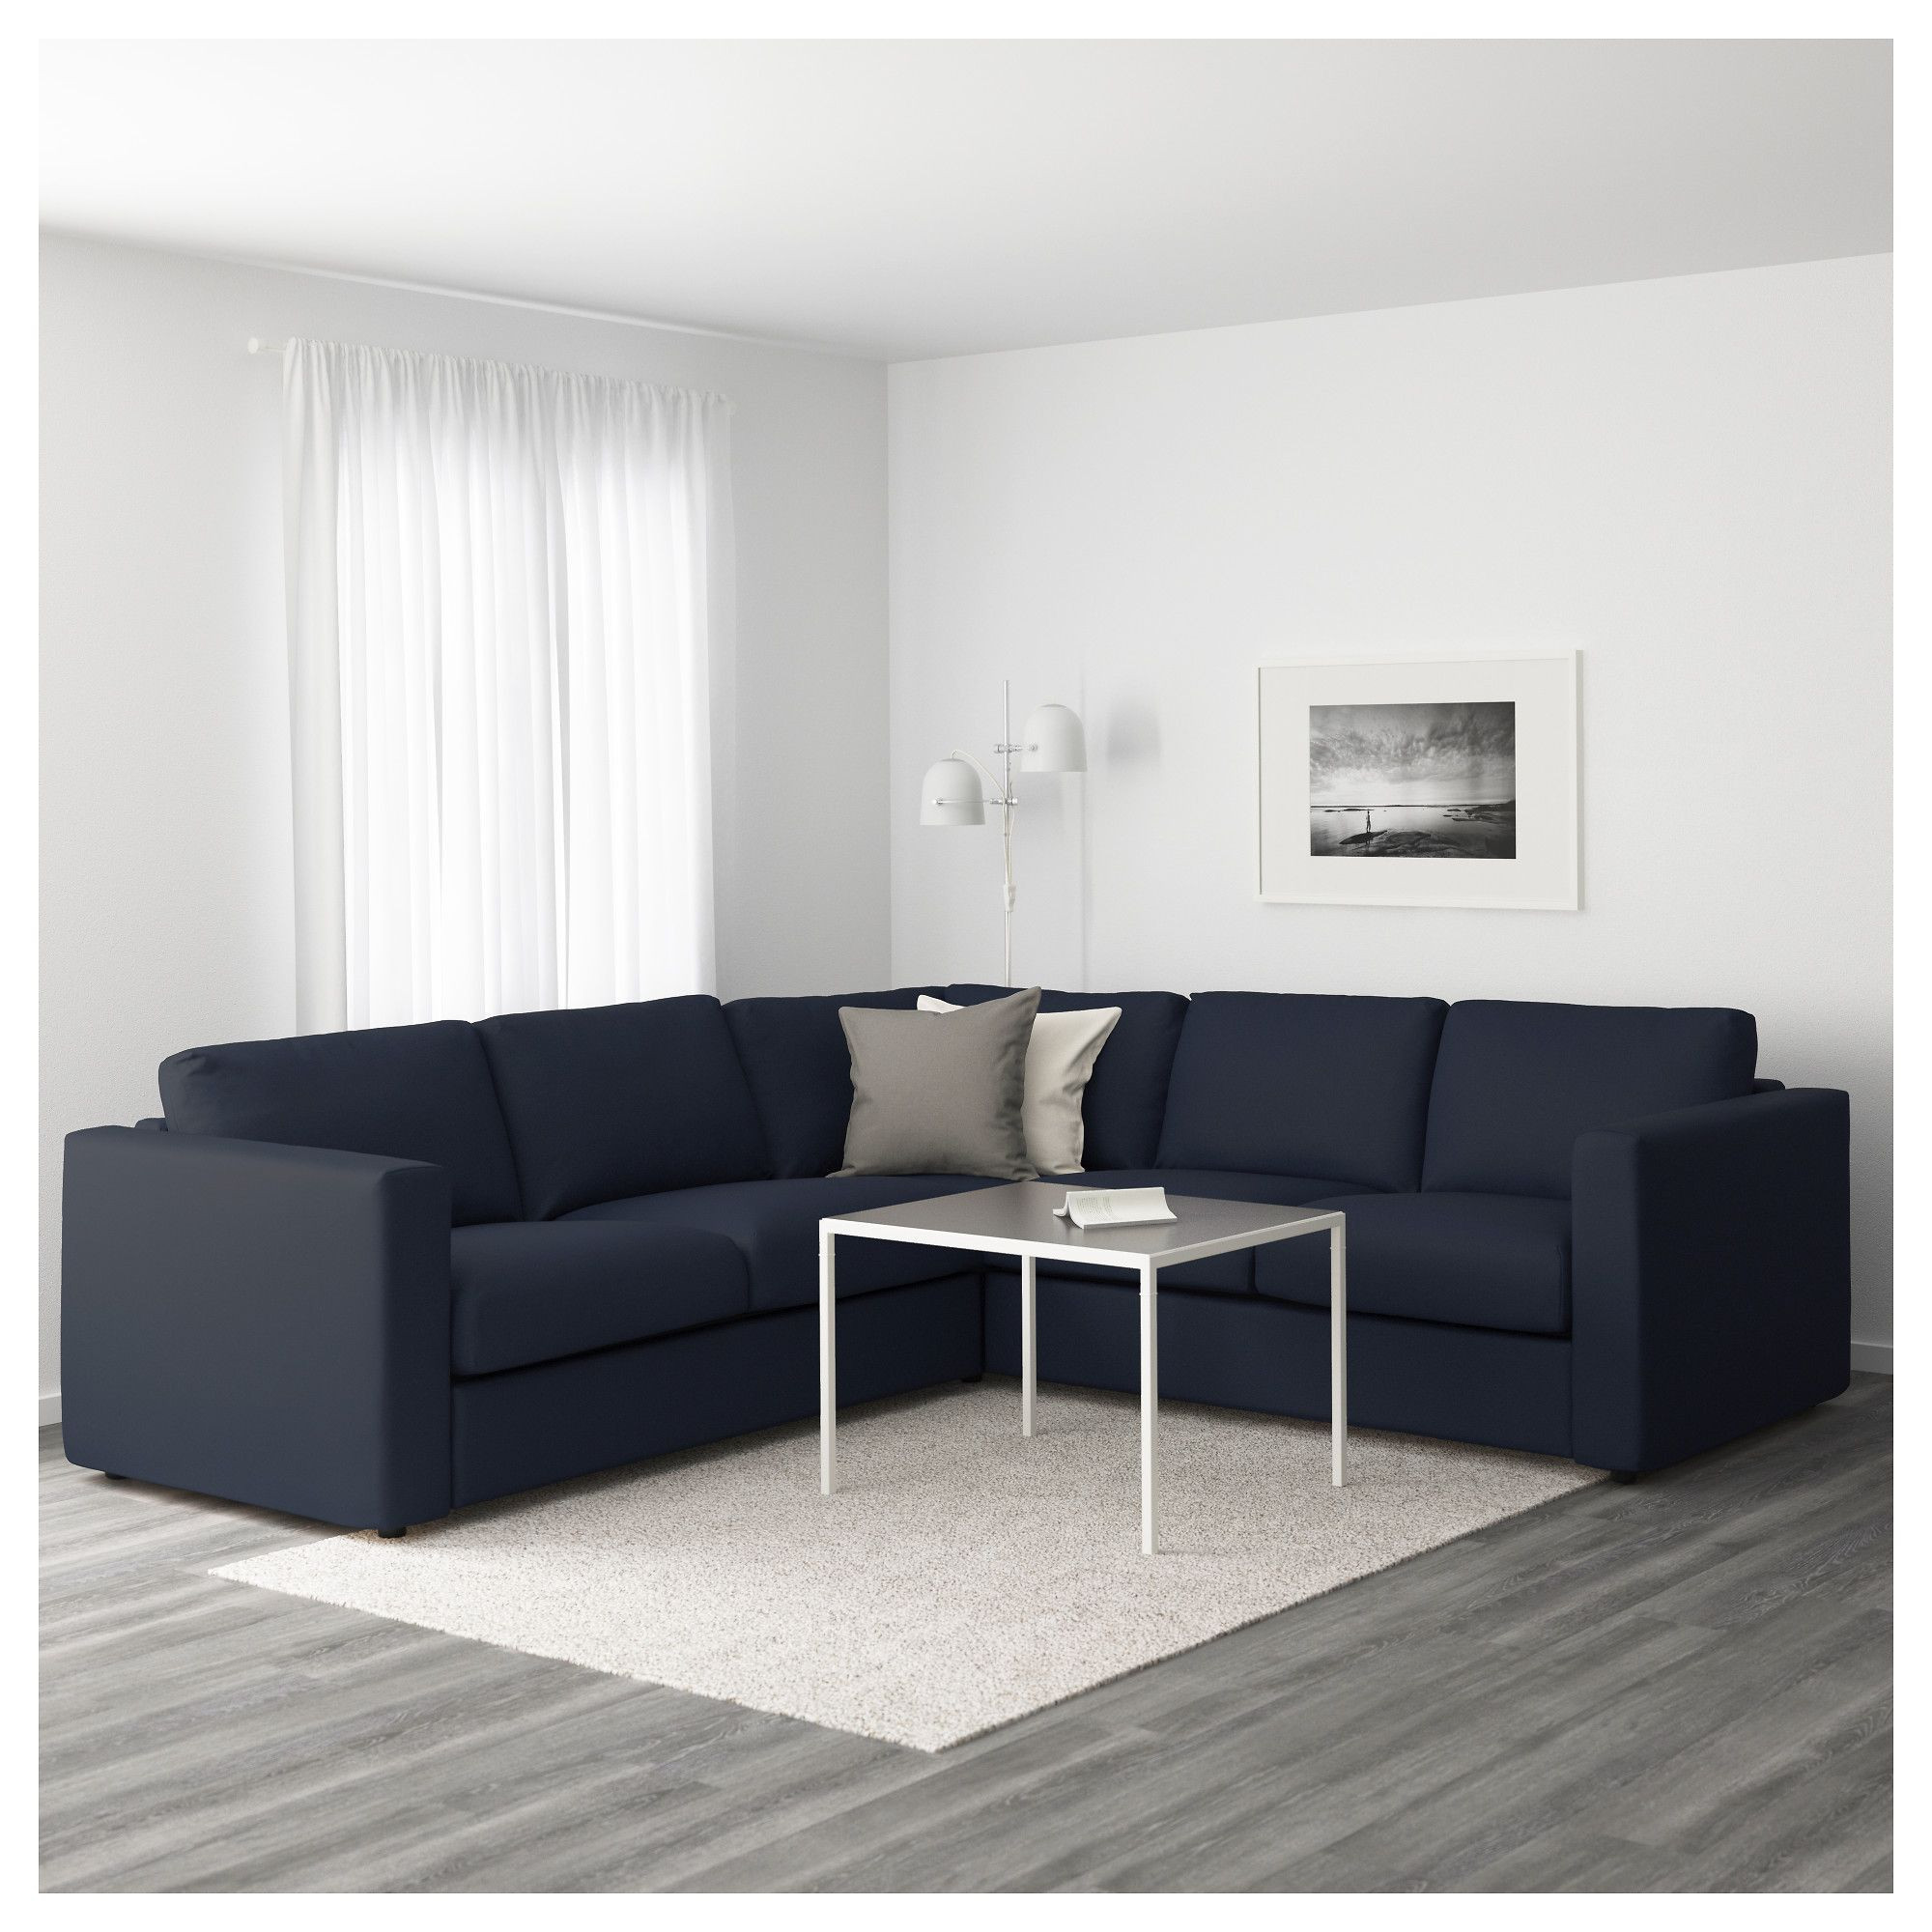 Bedroom Bench Seat Shoe Storage Benches Sofa And Seats Design Small For Traditional Furniture On Sale Long Apppie Org